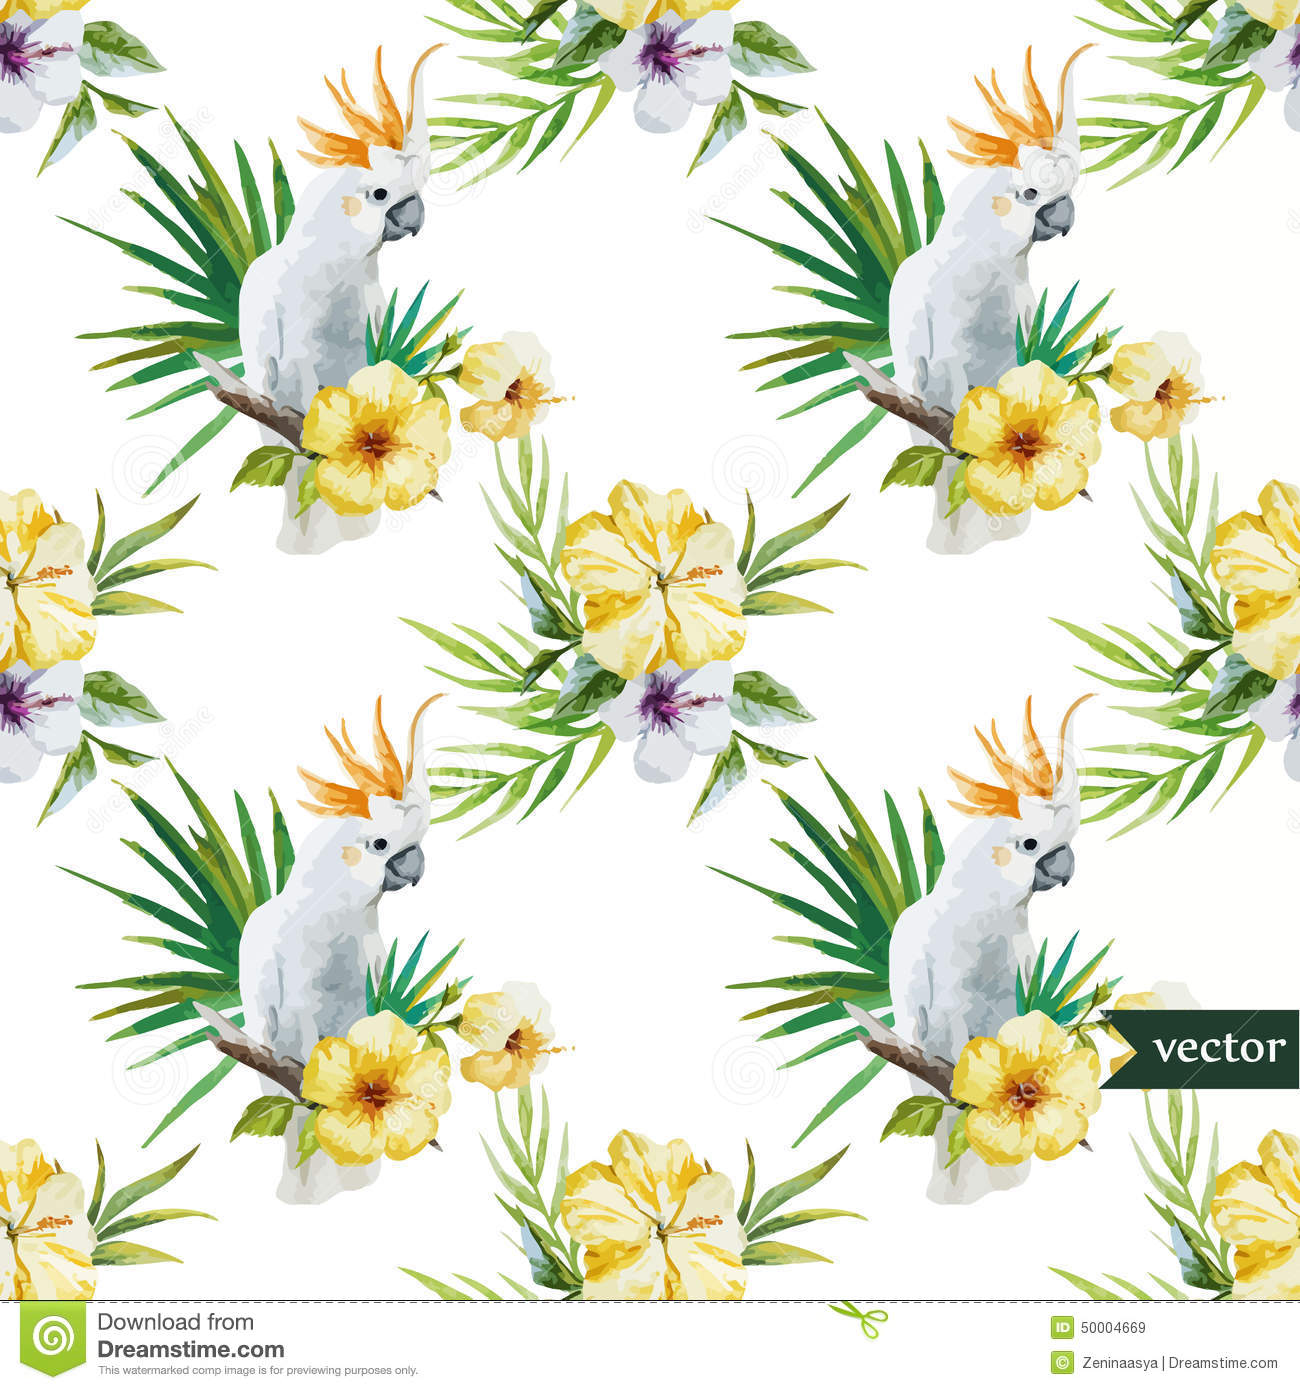 Flower Pattern Animated Animated Awesome Colorful With Flower